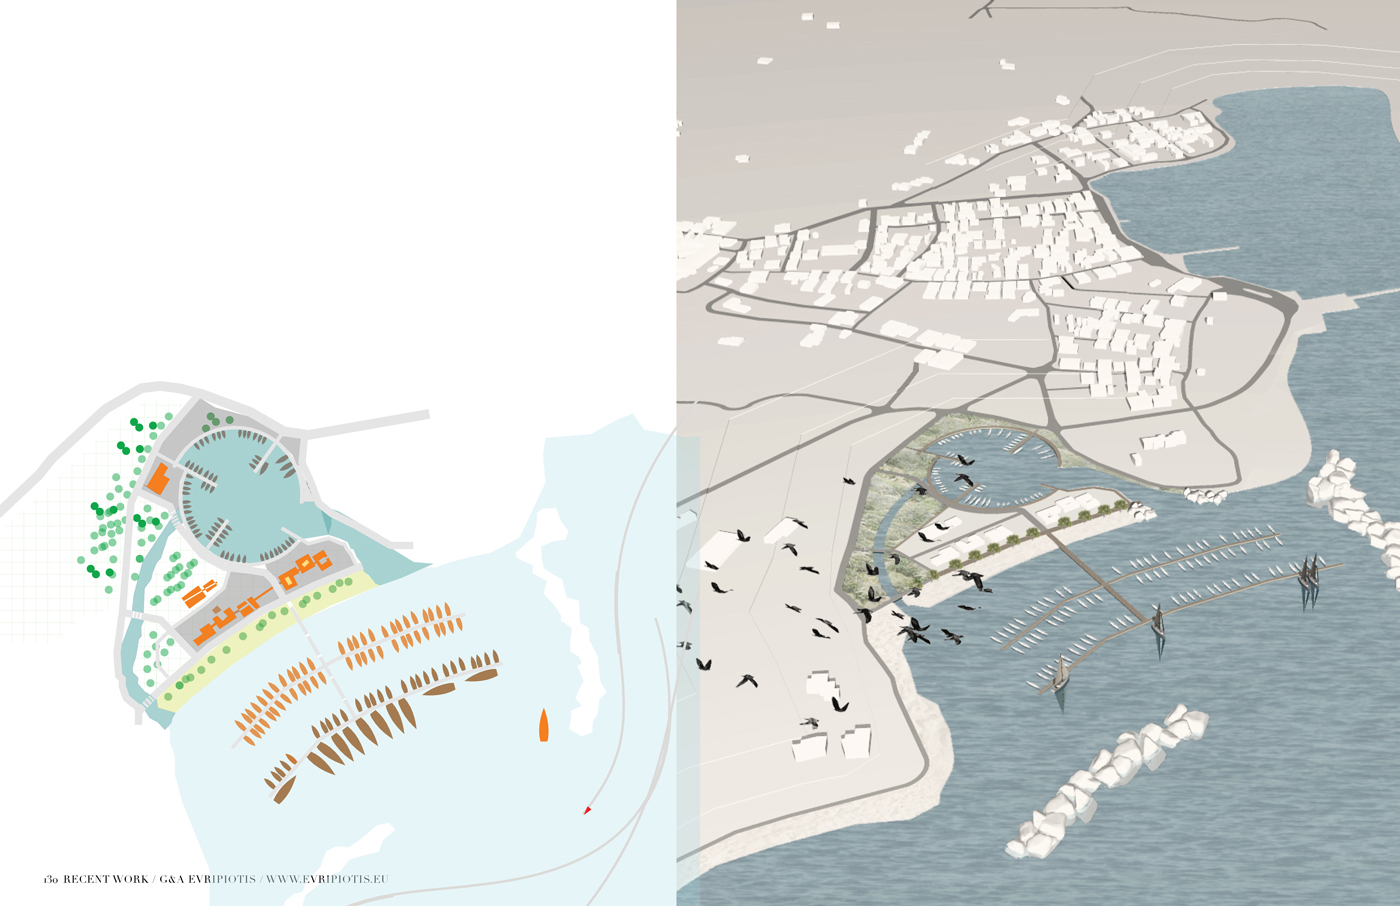 Thumbnail for Proposal for the Antiparos Marina